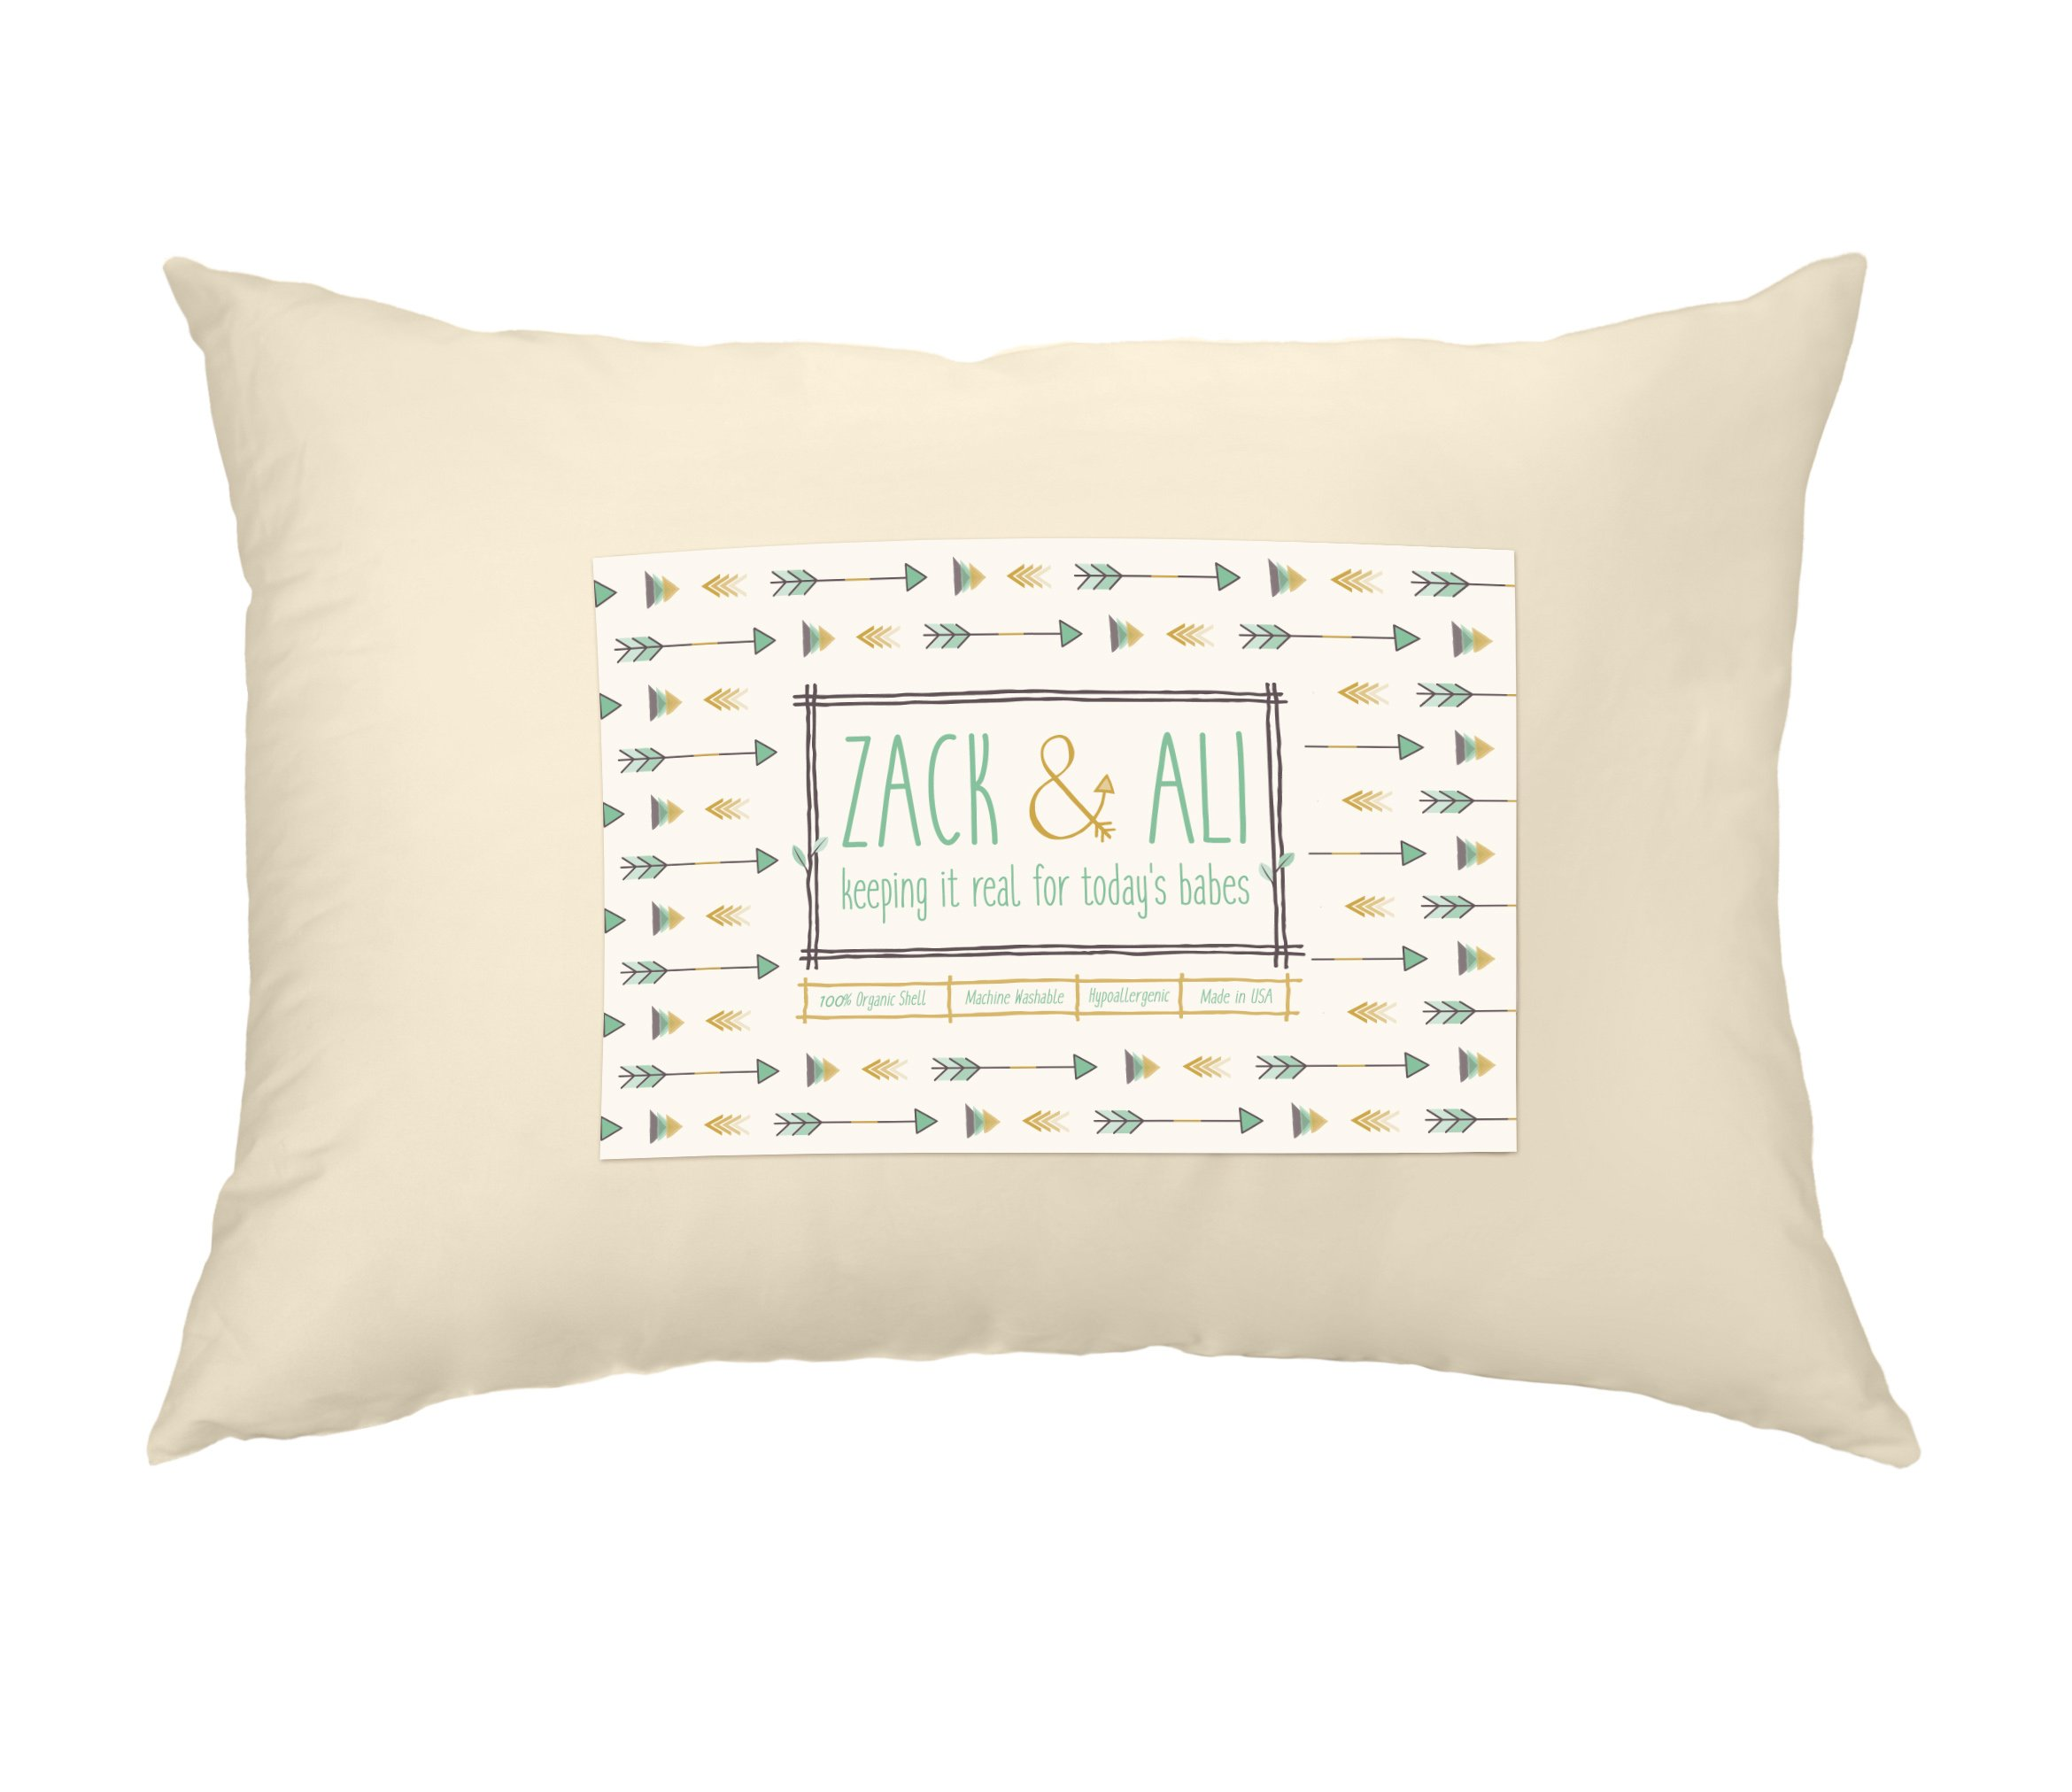 Zack & Ali Toddler Pillow, Soft 100% Organic Cotton, 13 x 18, Made in USA by Zack & Ali